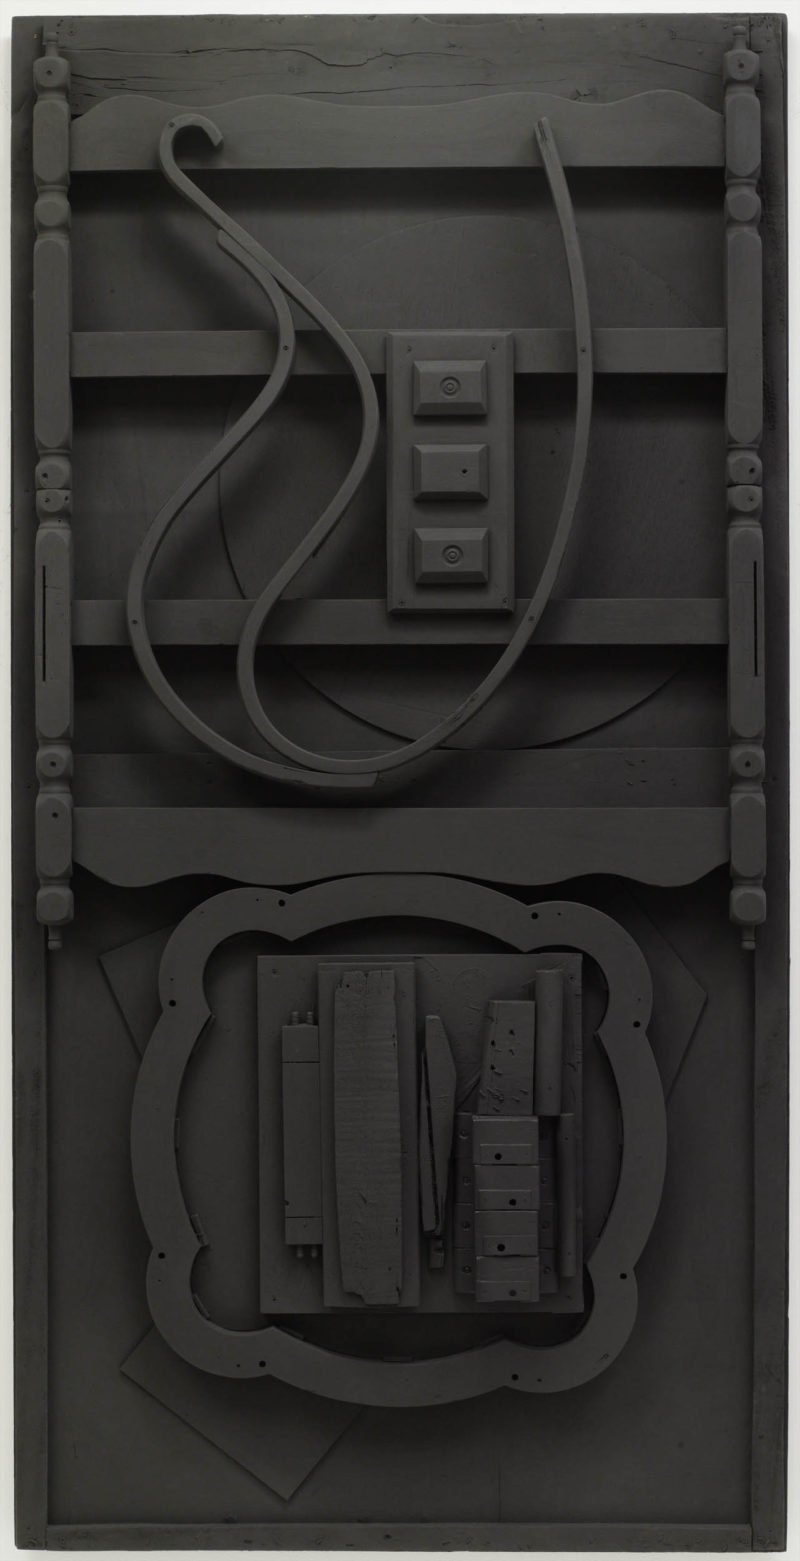 Louise Nevelson, Untitled, 1976-78 (detail). Wood painted black. © Estate of Louise Nevelson / 2019 Artists Rights Society (ARS). Courtesy Pace Gallery.